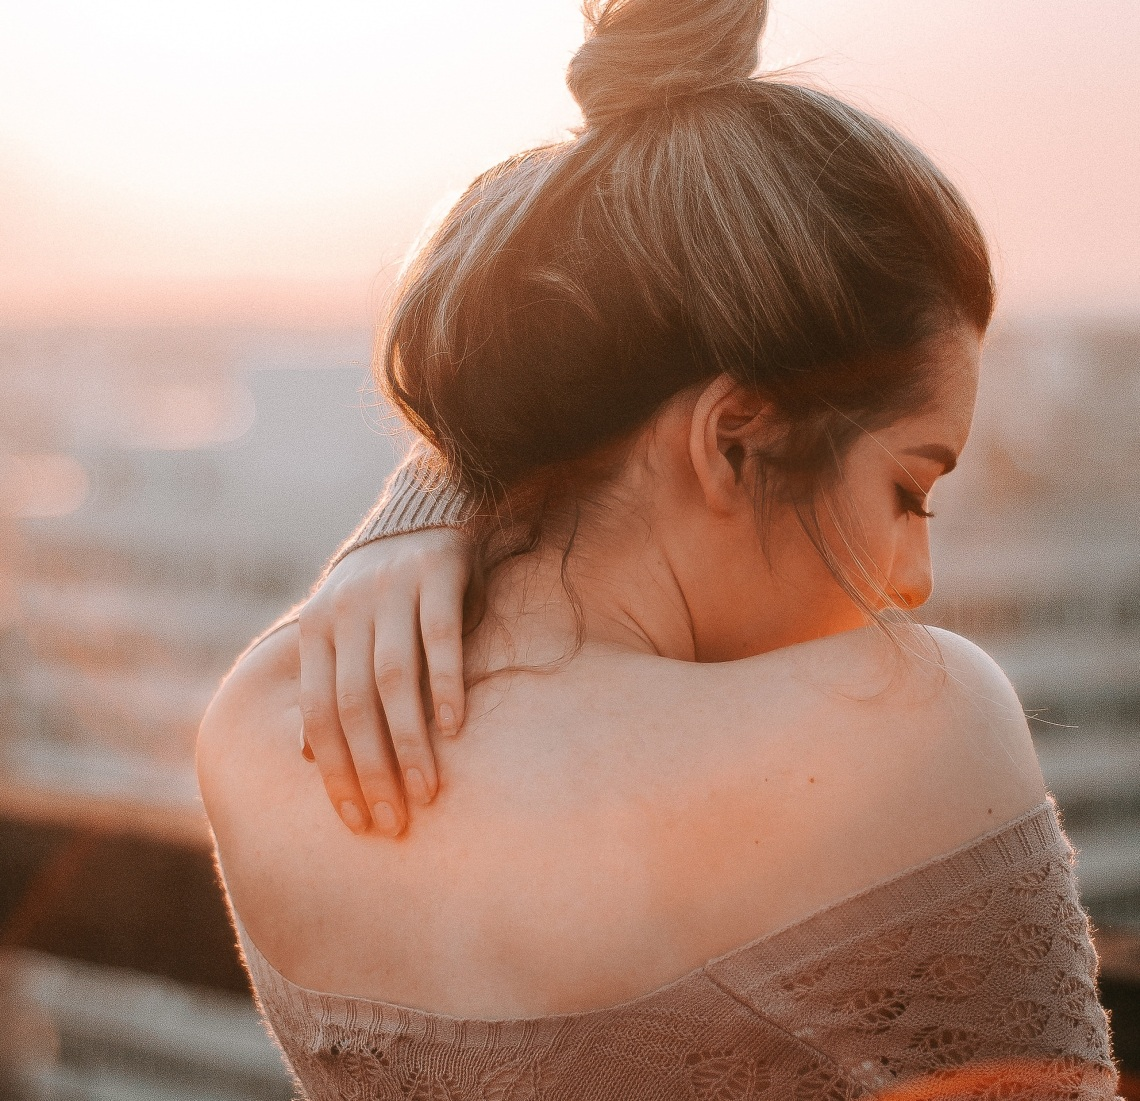 girl with hand on her back, girl in sunset, finding joy